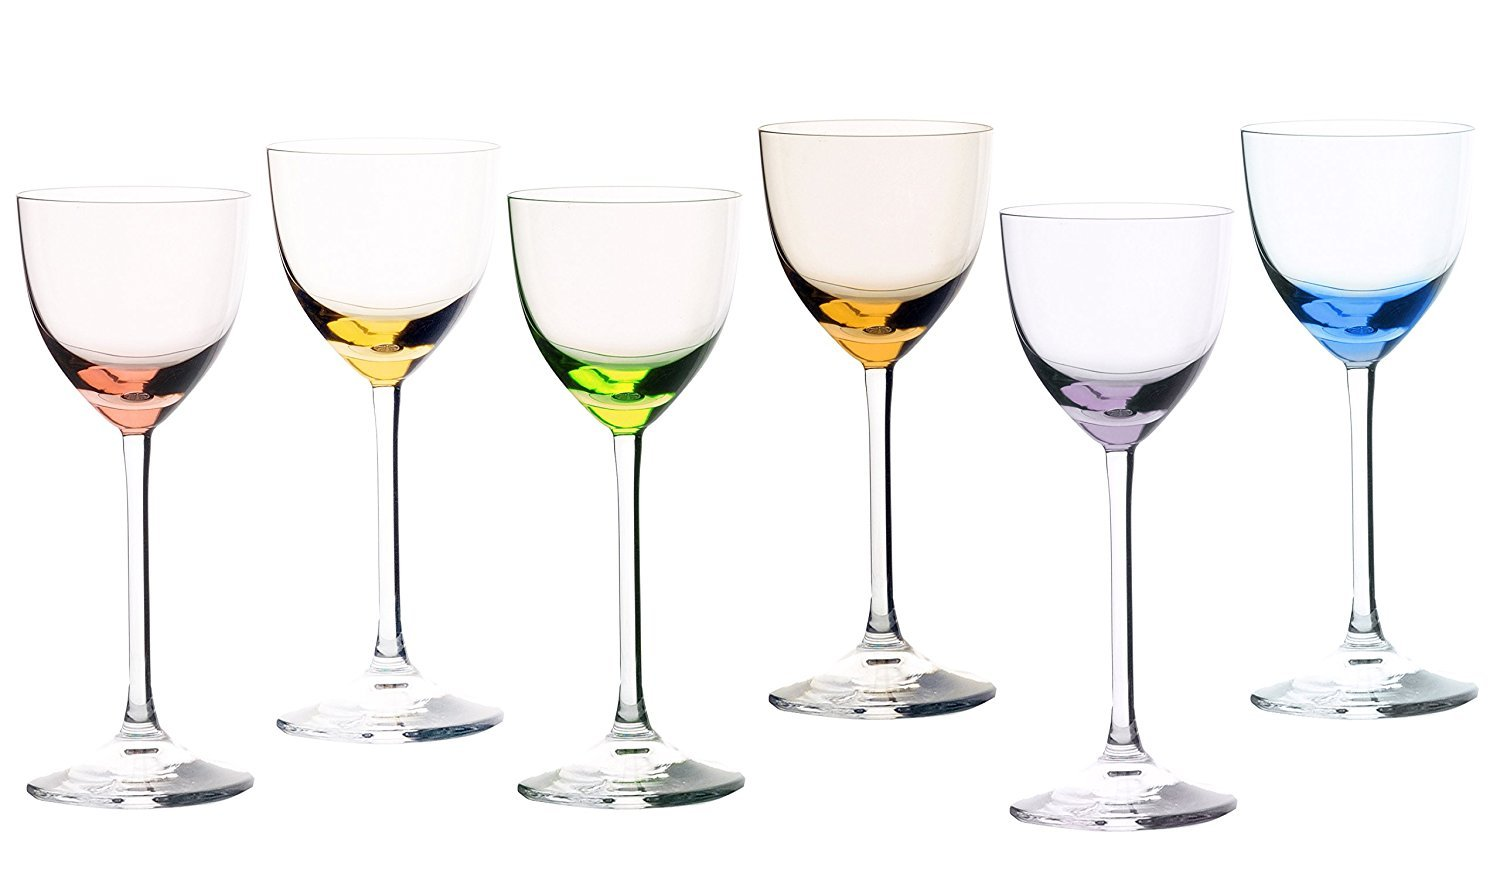 Series of Wine Glasses Assorted Colors Crystal Sevrès